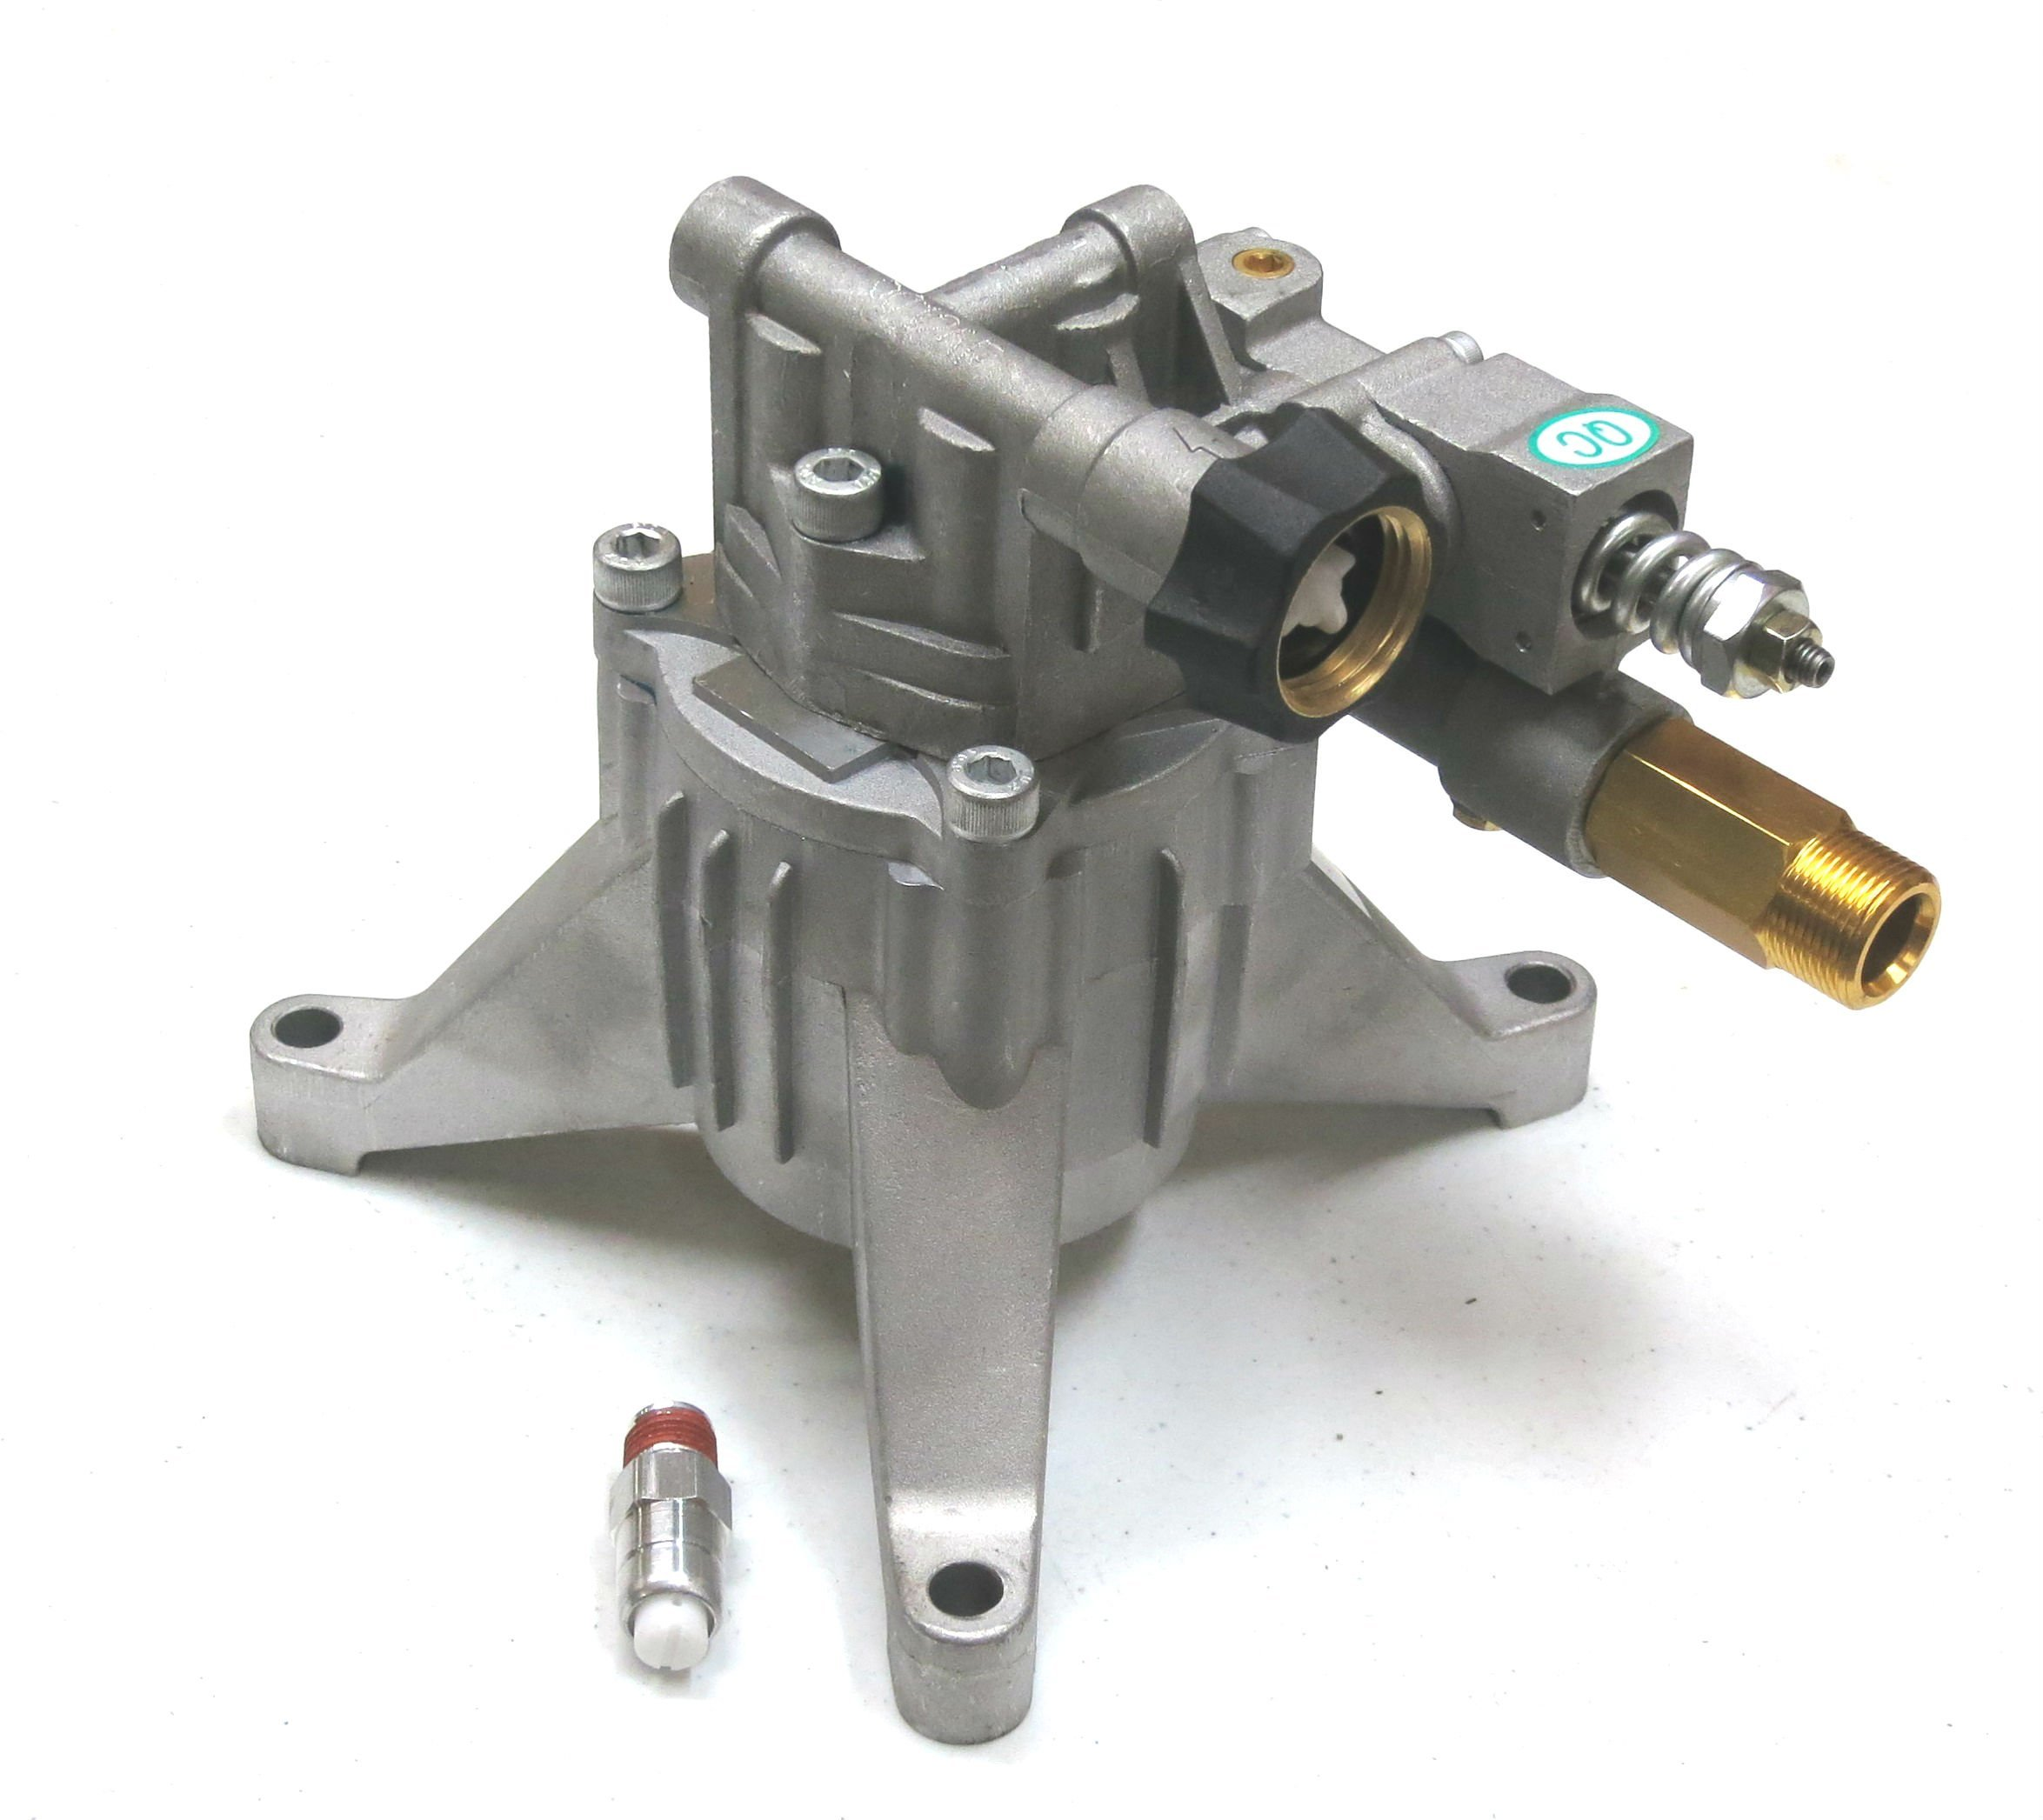 Pressure Washer Water PUMP for Troy Bilt Husky Briggs & Stratton Karcher & More by Himore